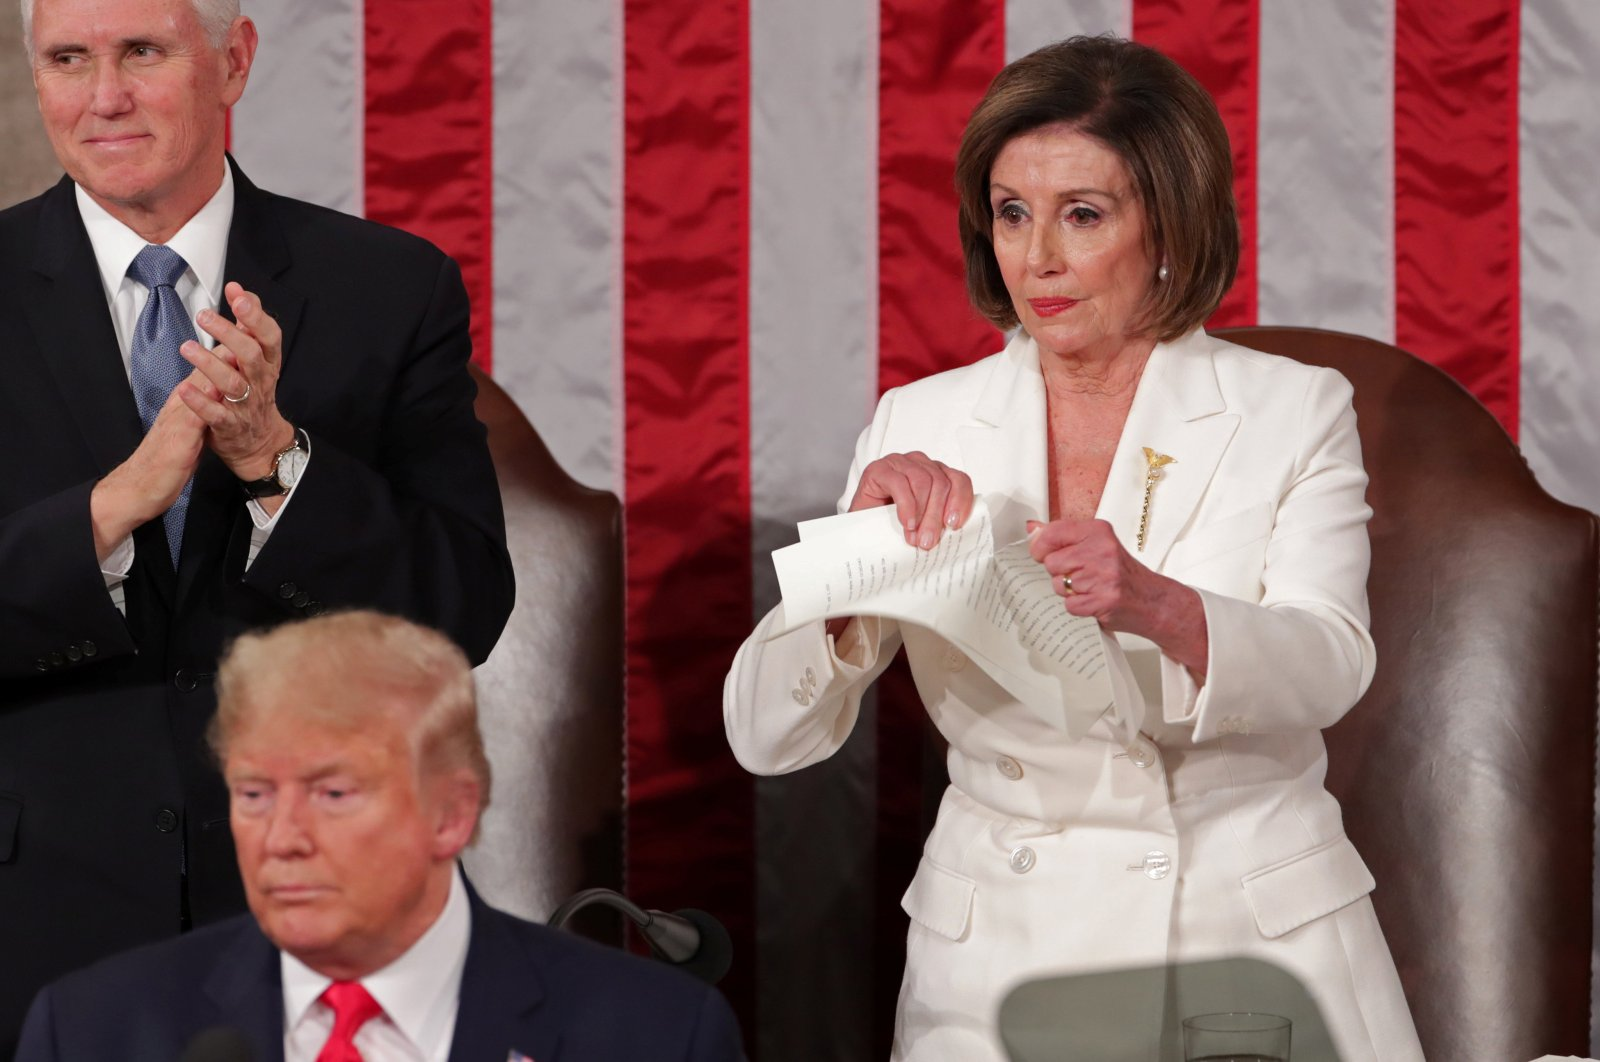 Speaker of the House Nancy Pelosi (D-CA) rips up the speech of U.S. President Donald Trump after his State of the Union address to a joint session of the U.S. Congress in the House Chamber of the U.S. Capitol in Washington, D.C., Feb. 4, 2020. (Reuters Photo)